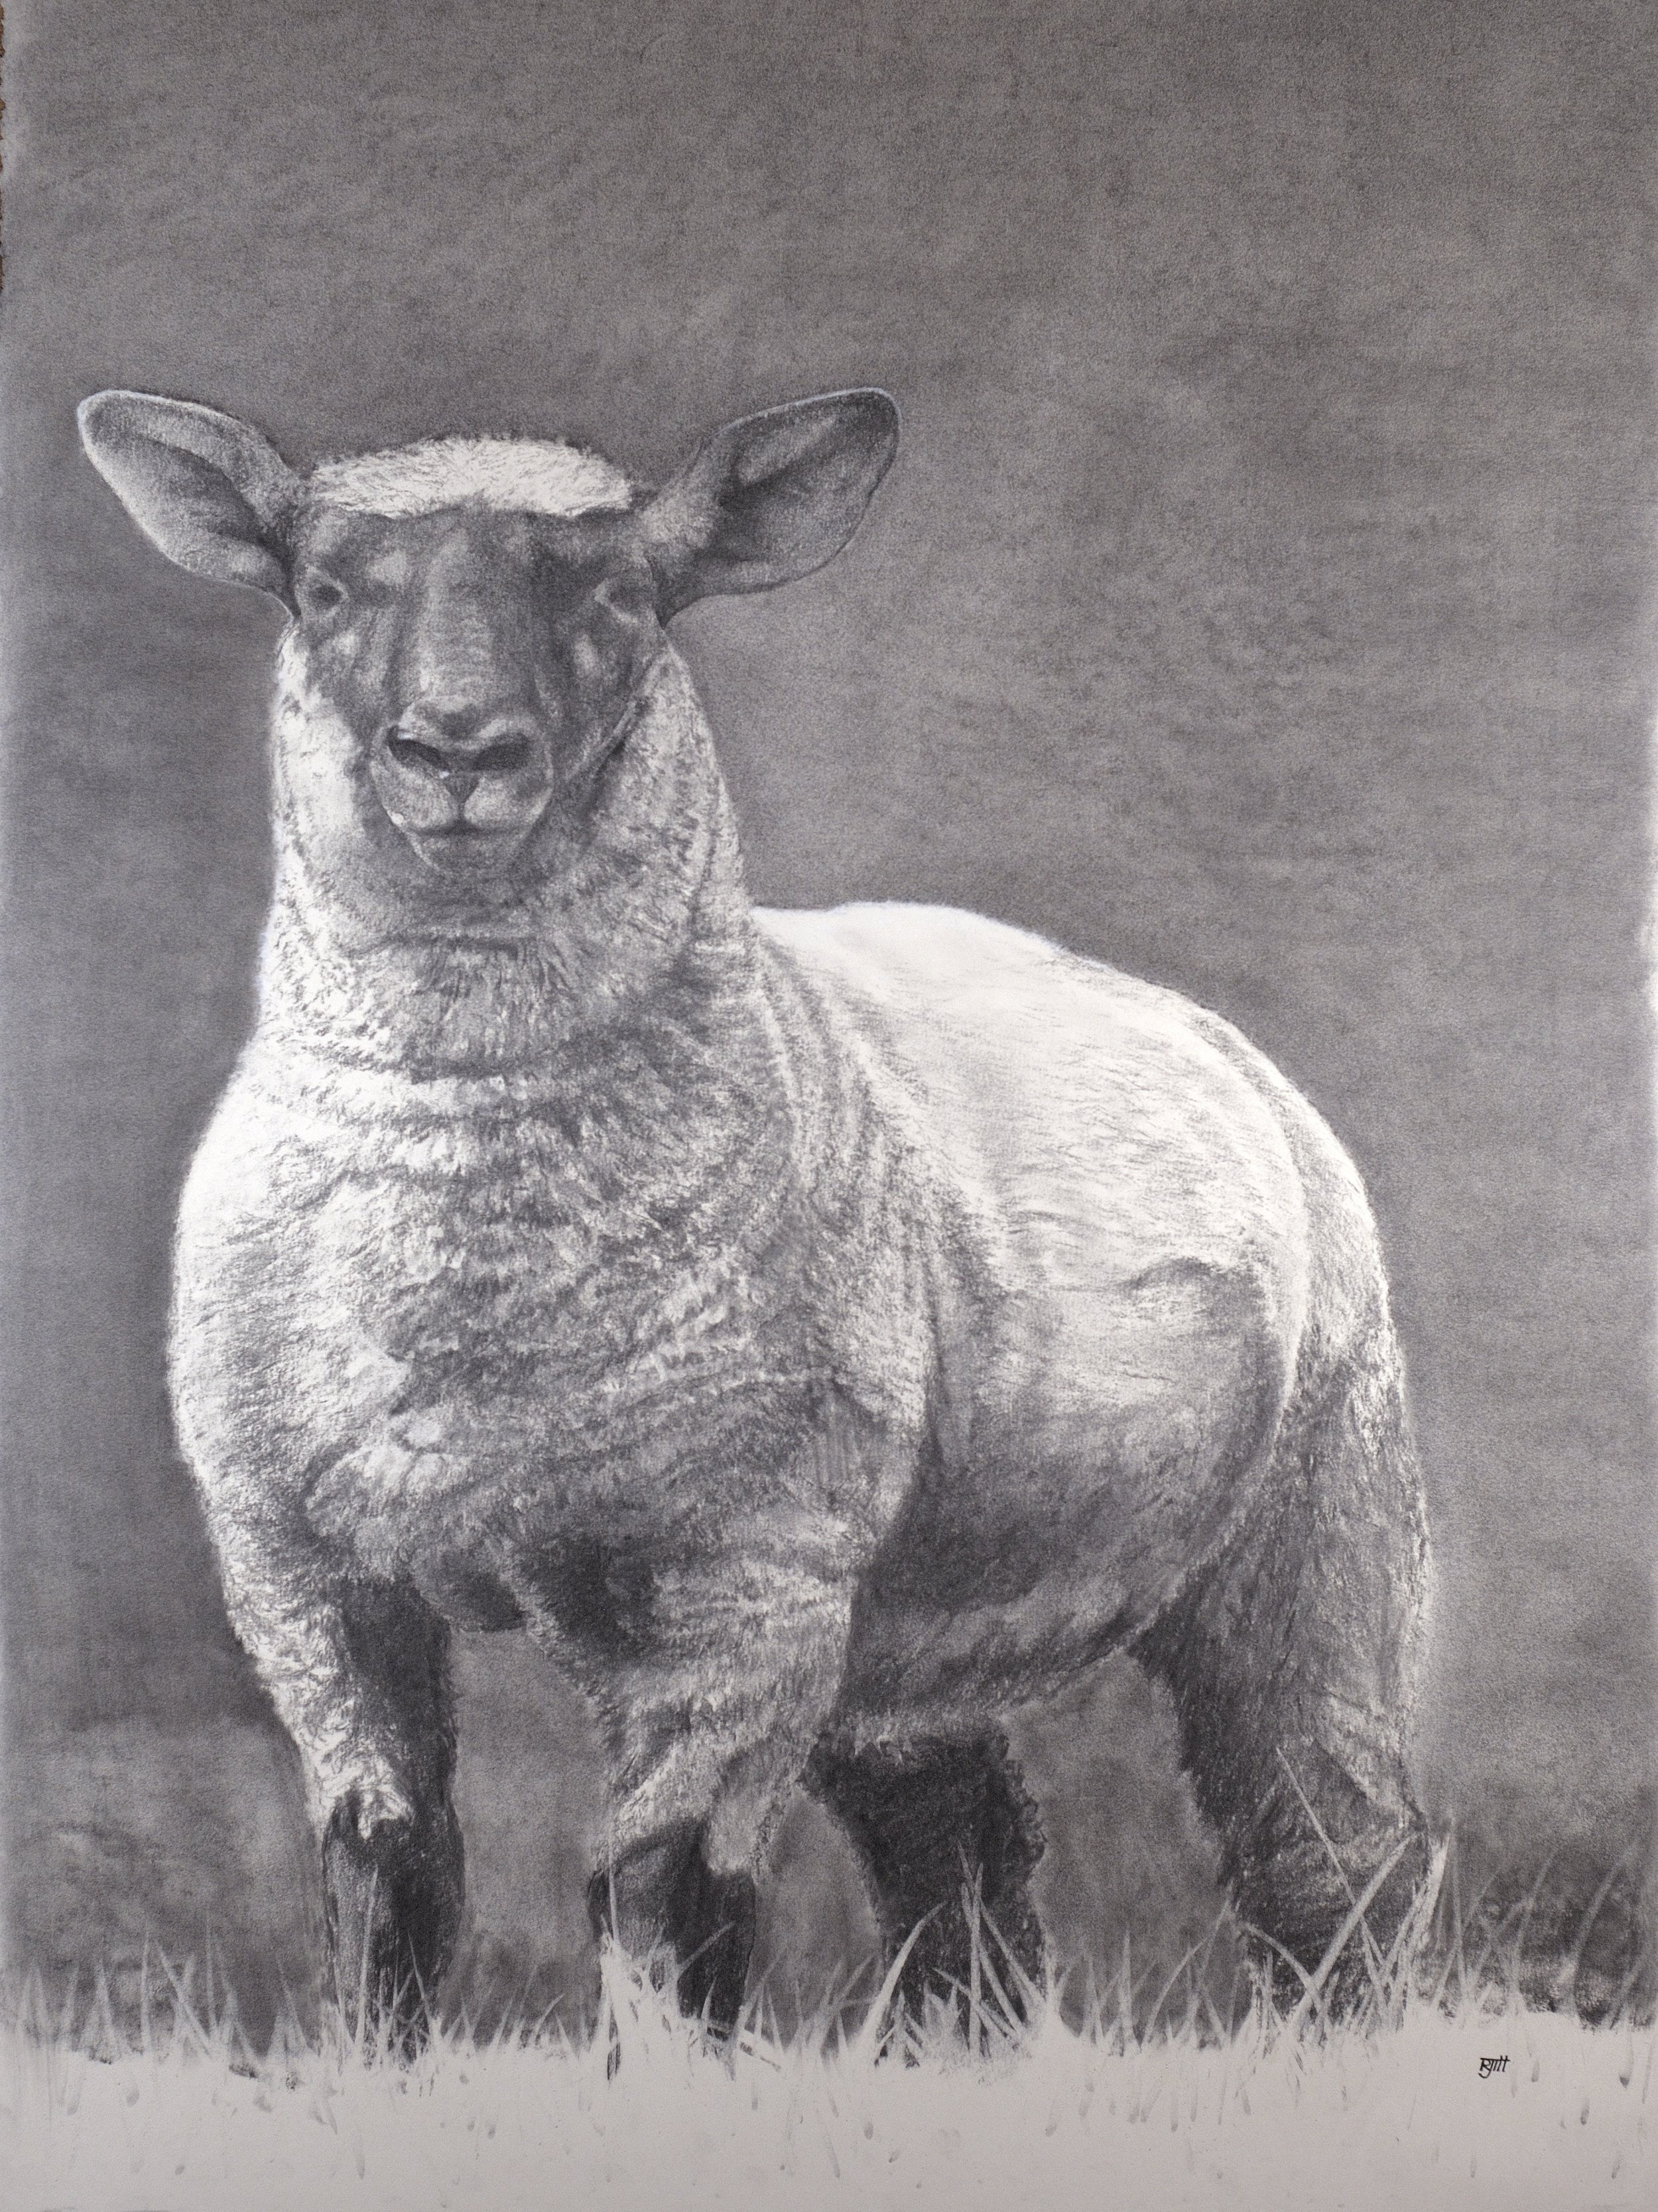 Untitled Sheep, 2018, charcoal, 30 x 22 in, $3,200